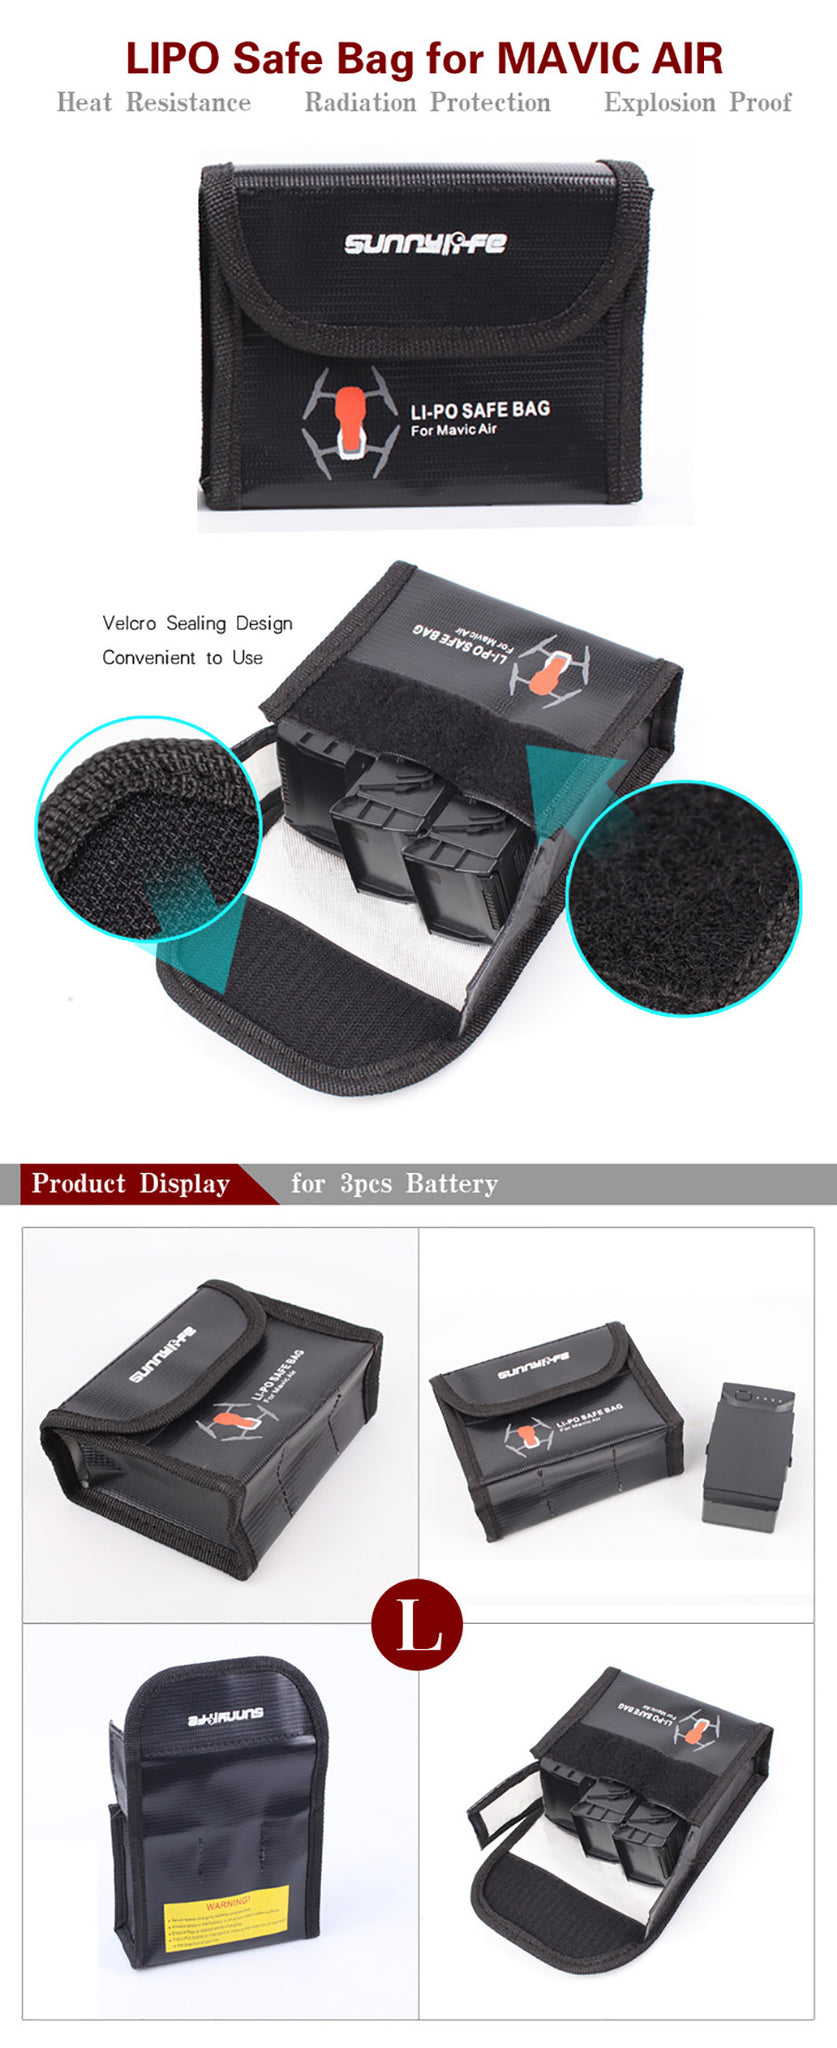 Sunnylife LiPo Battery Explosion-proof Safe Bag Fireproof Protective Storage Box for DJI Mavic Air